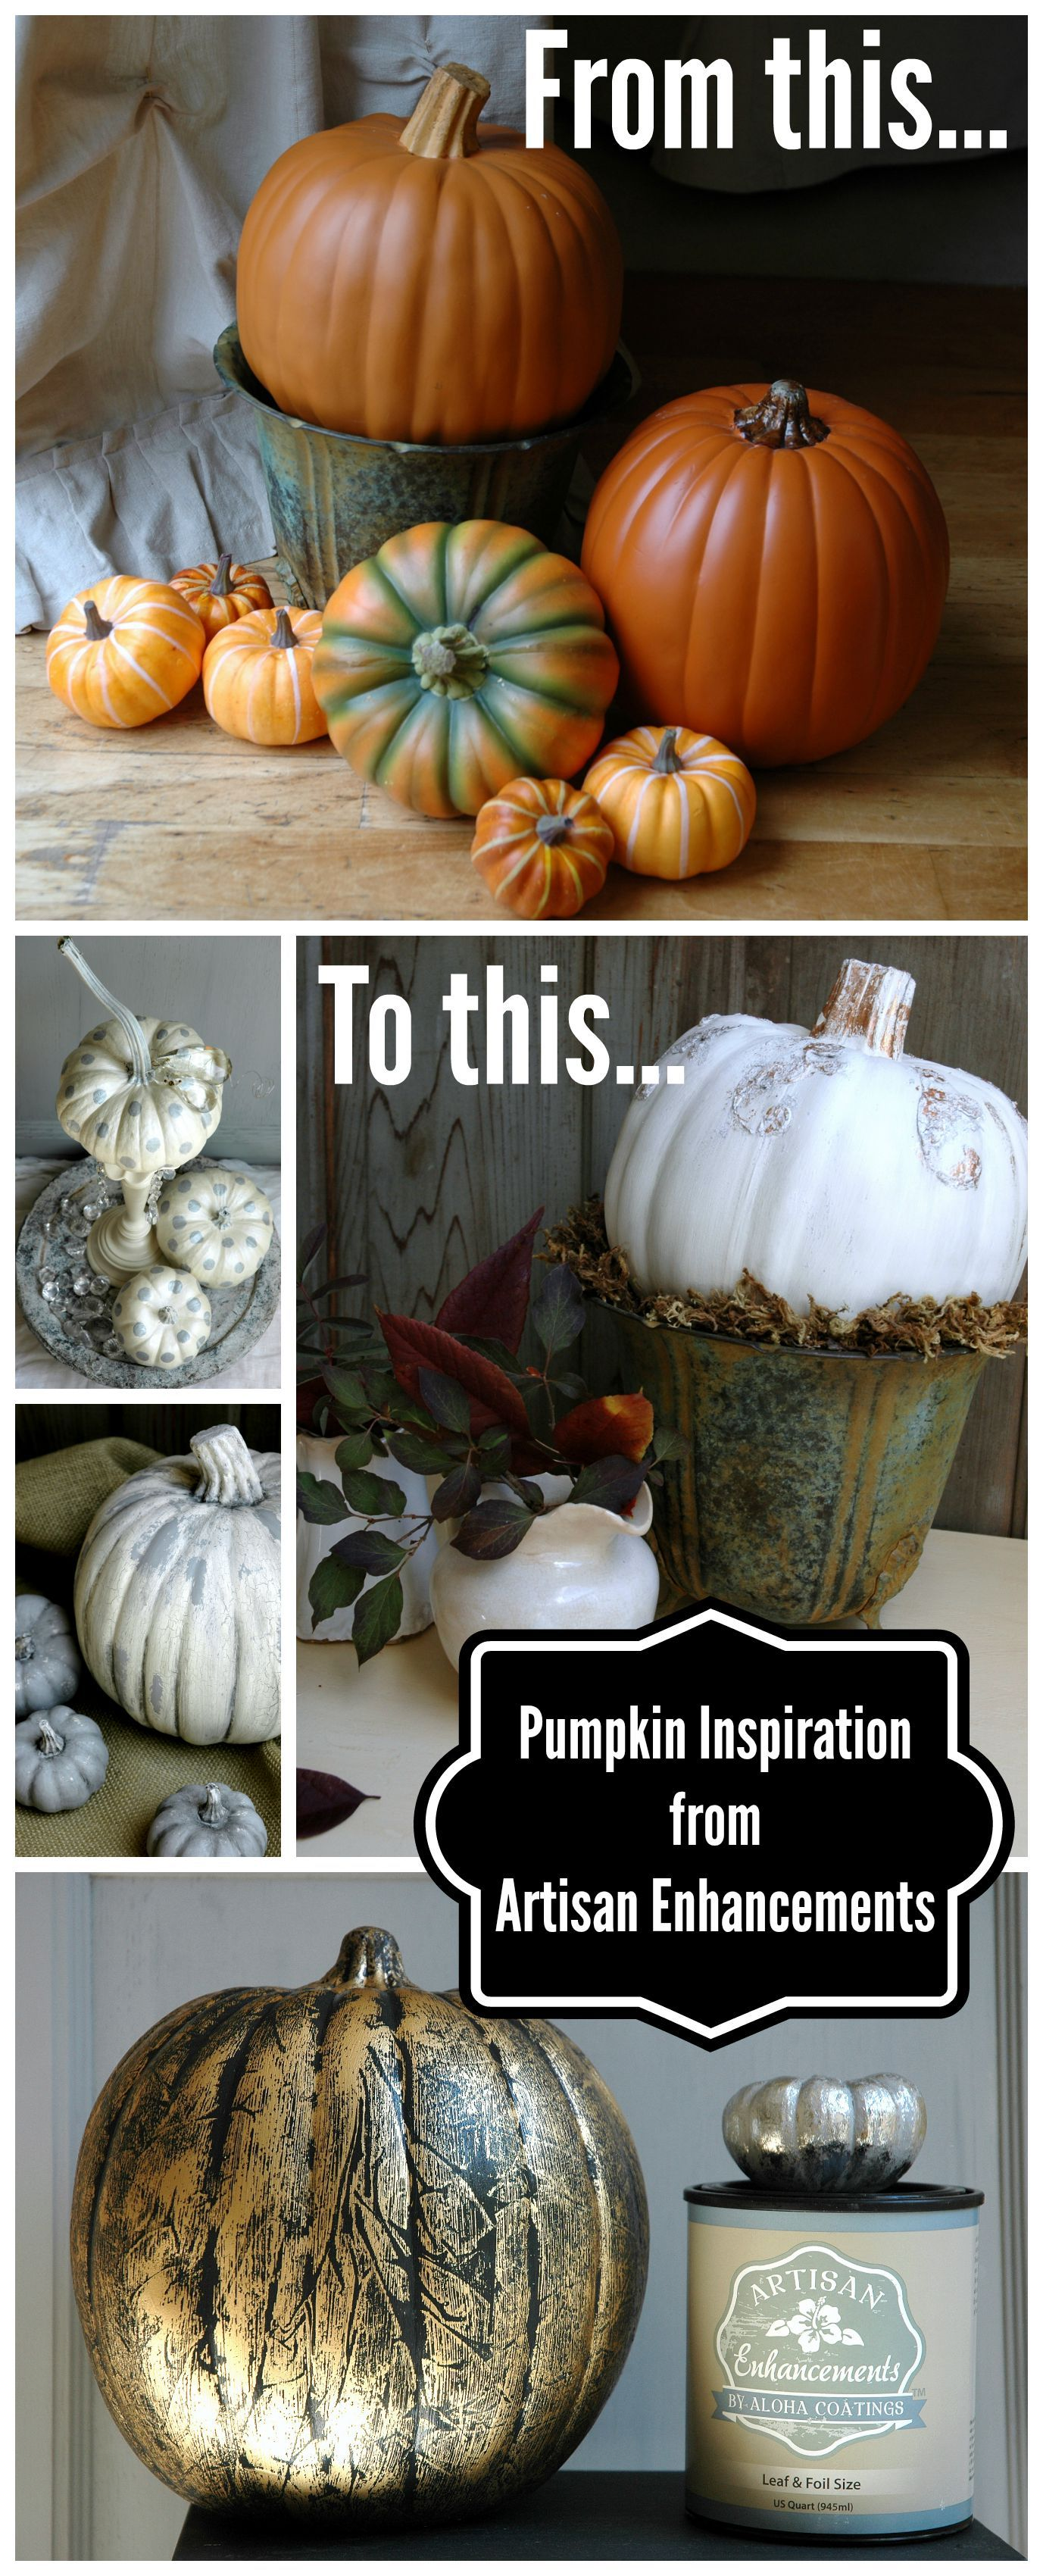 How to store pumpkins - Jazz Up Some Plain Craft Store Pumpkins With User Friendly Art Products From Artisan Enhancements